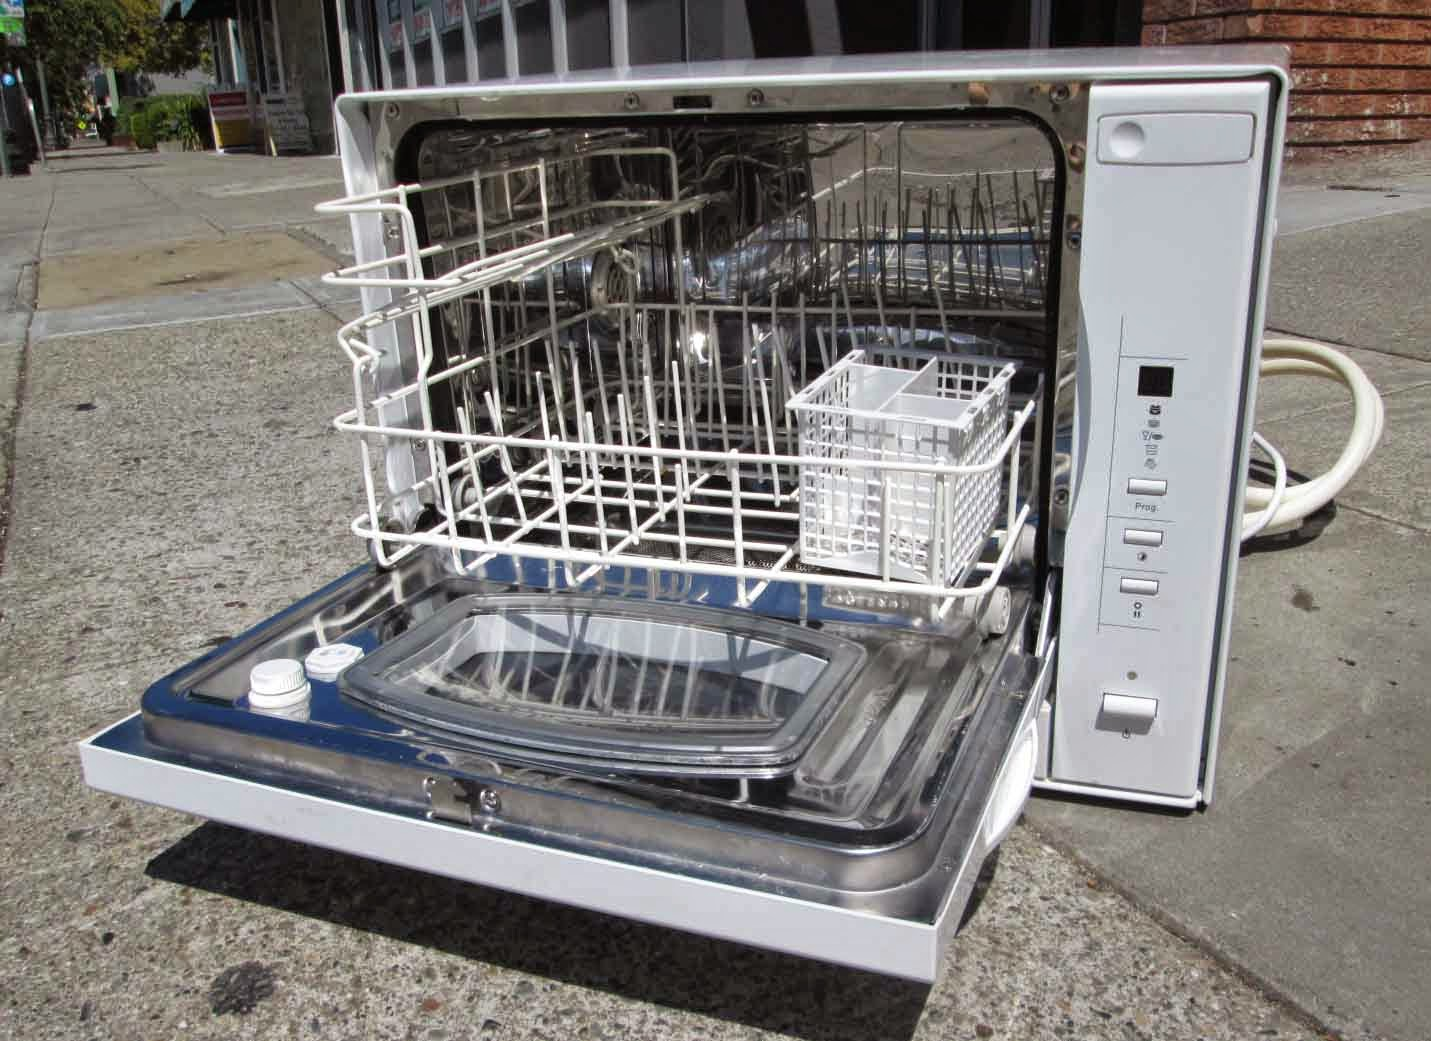 Countertop Dishwasher For Sale South Africa : ... : SOLD Keep it clean! Danby Countertop Dishwasher, 2 years old - $125